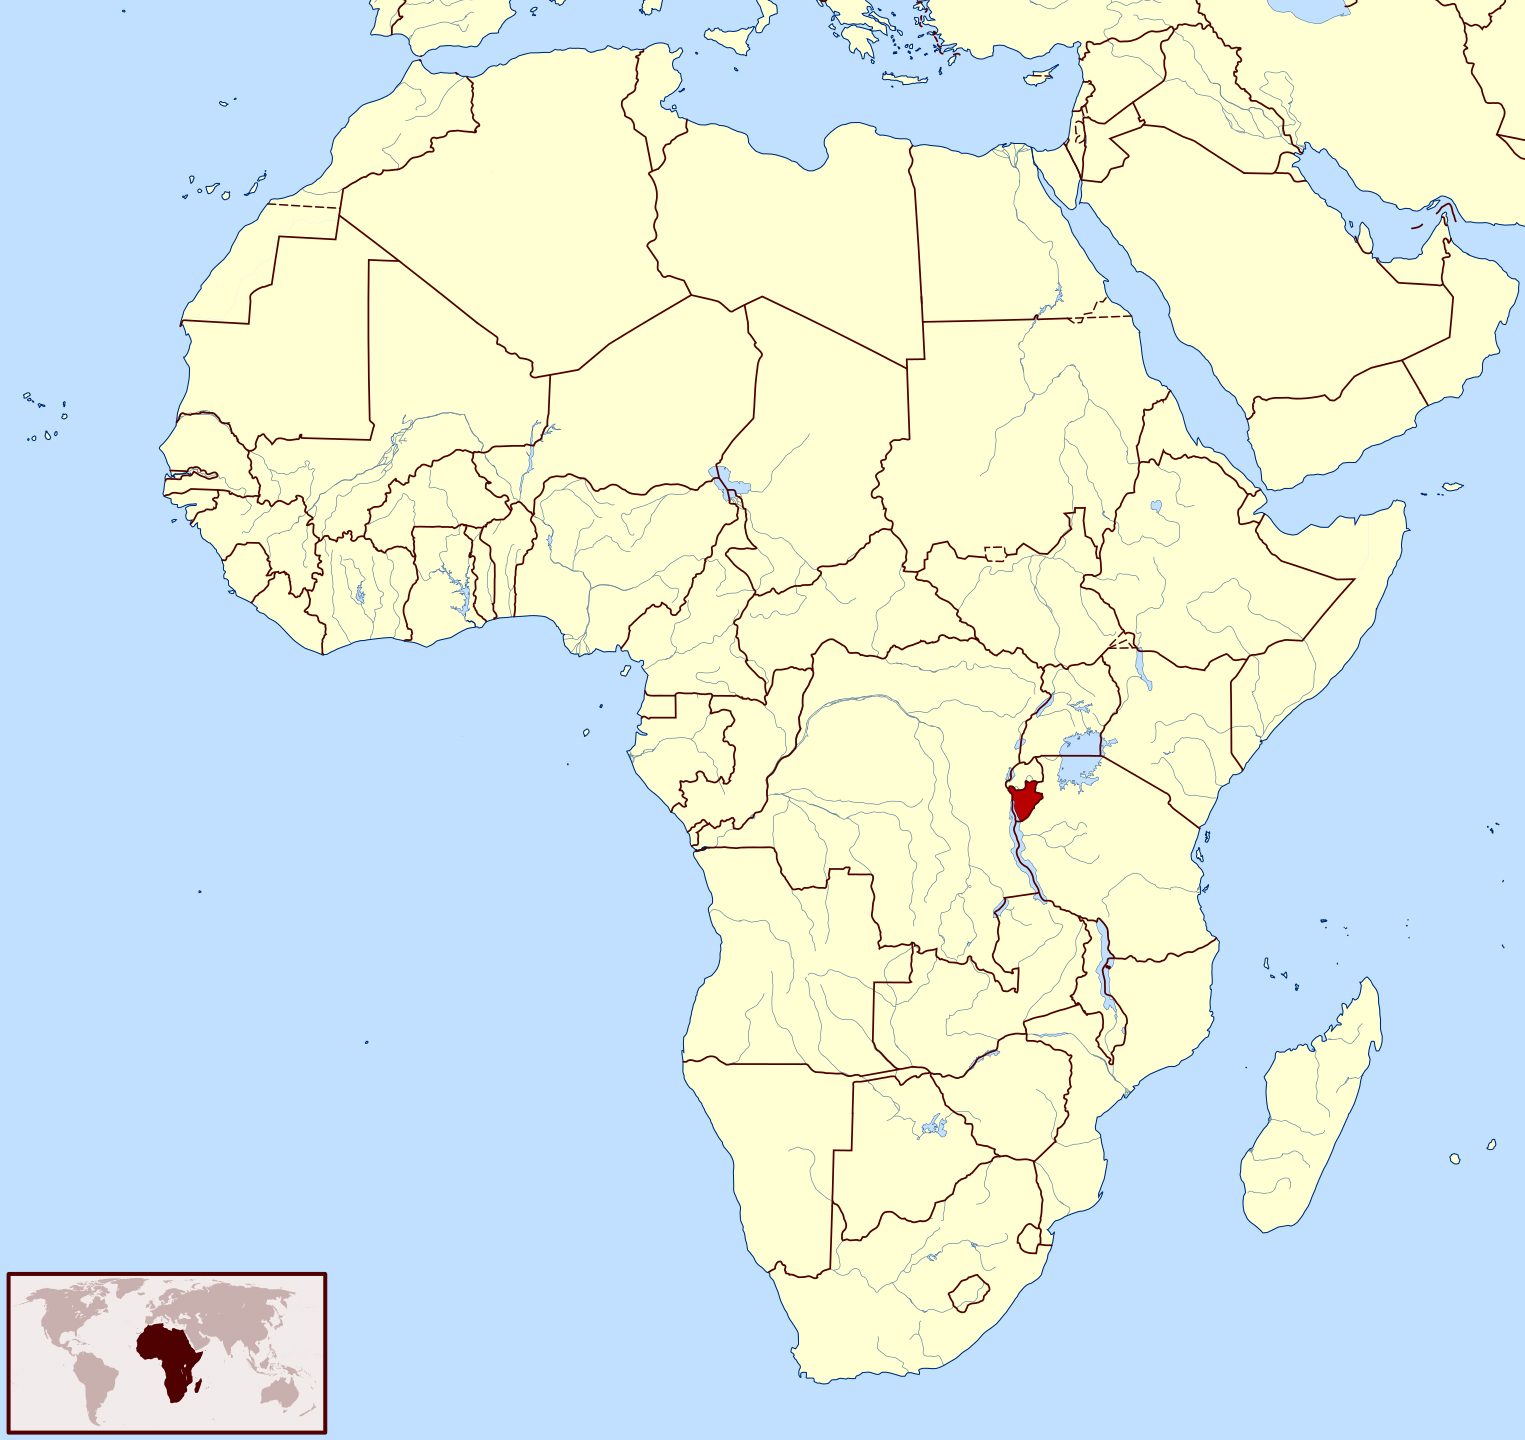 Where Is Burundi On A Map Of Africa Large location map of Burundi in Africa | Burundi | Africa